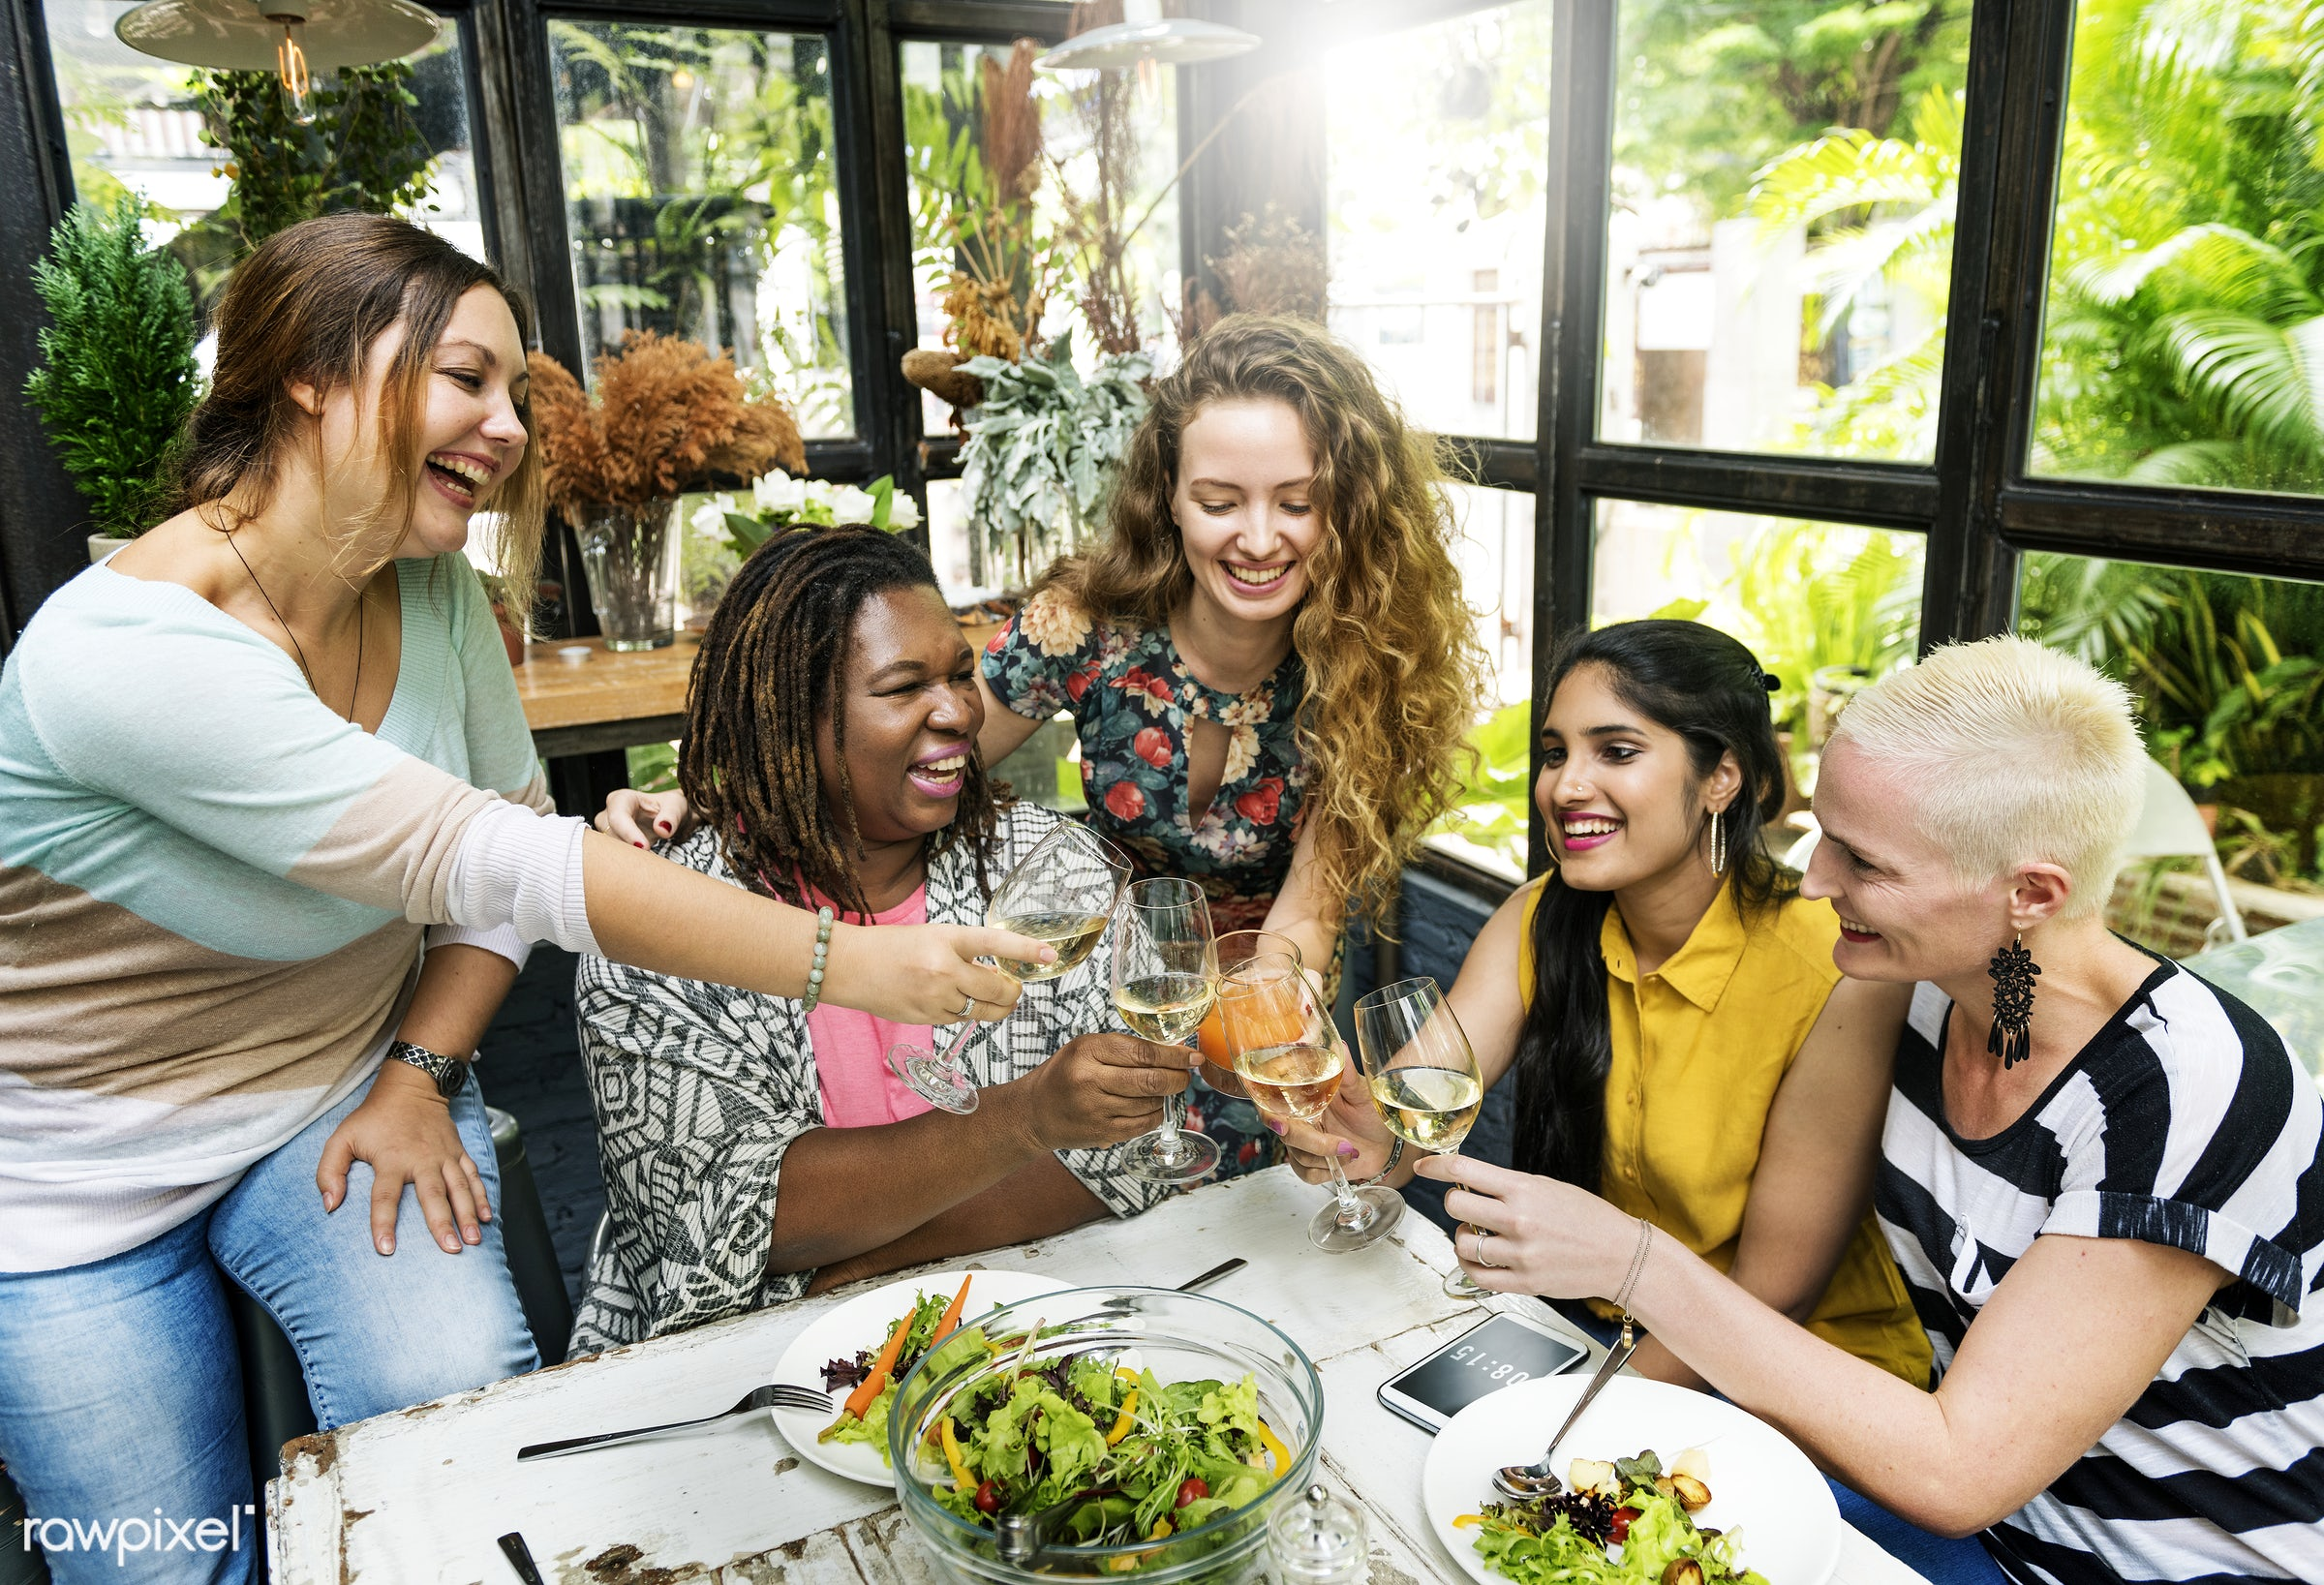 adult, african descent, bonding, bright, brunch, cafe, casual, celebration, cheerful, cheers, connection, day, dining,...